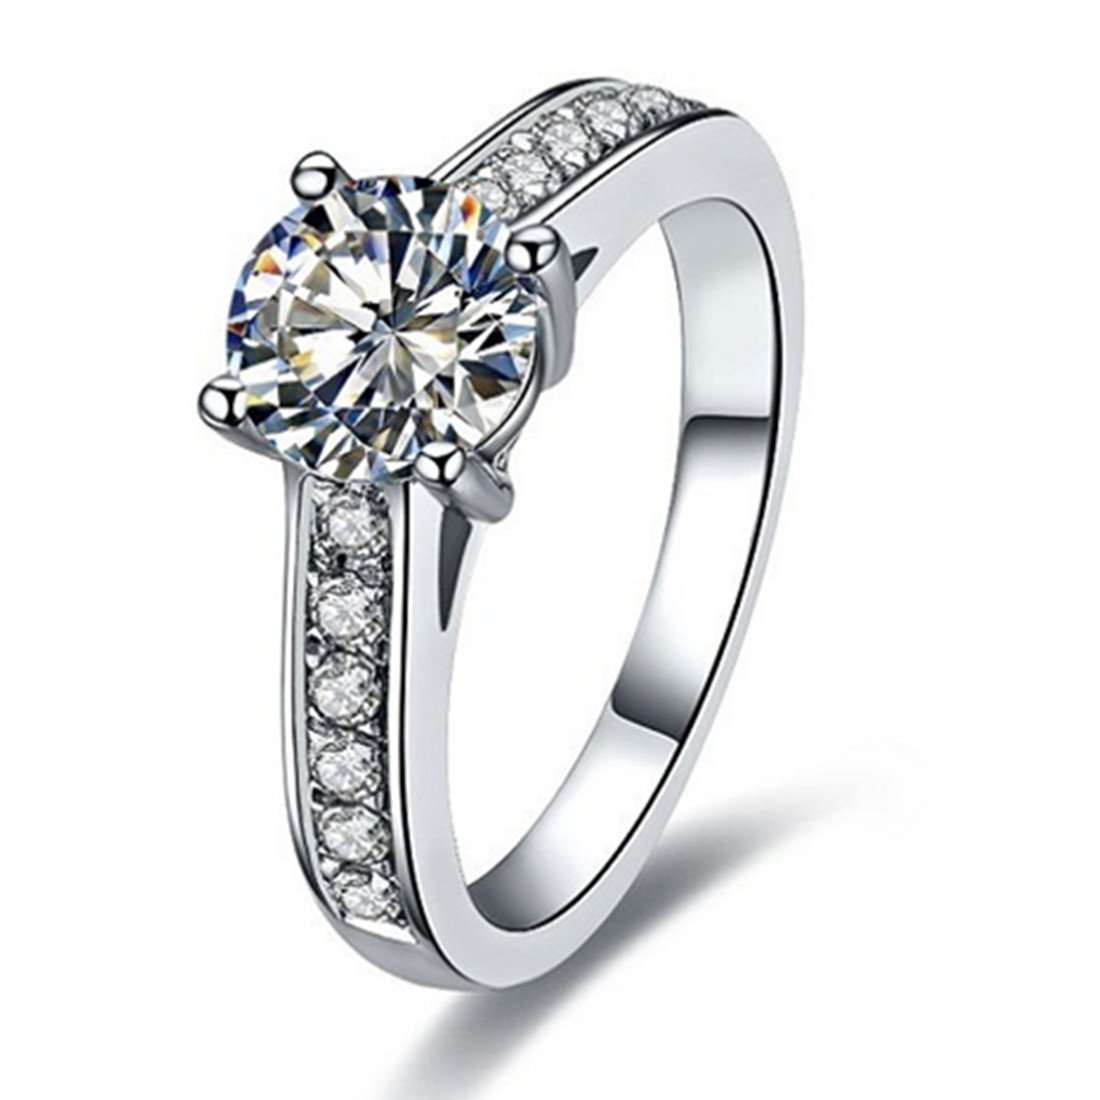 Sterling Silver 1CT Brand Engagement Ring for Women NSCD Simulated Diamond 4 Prongs Setting